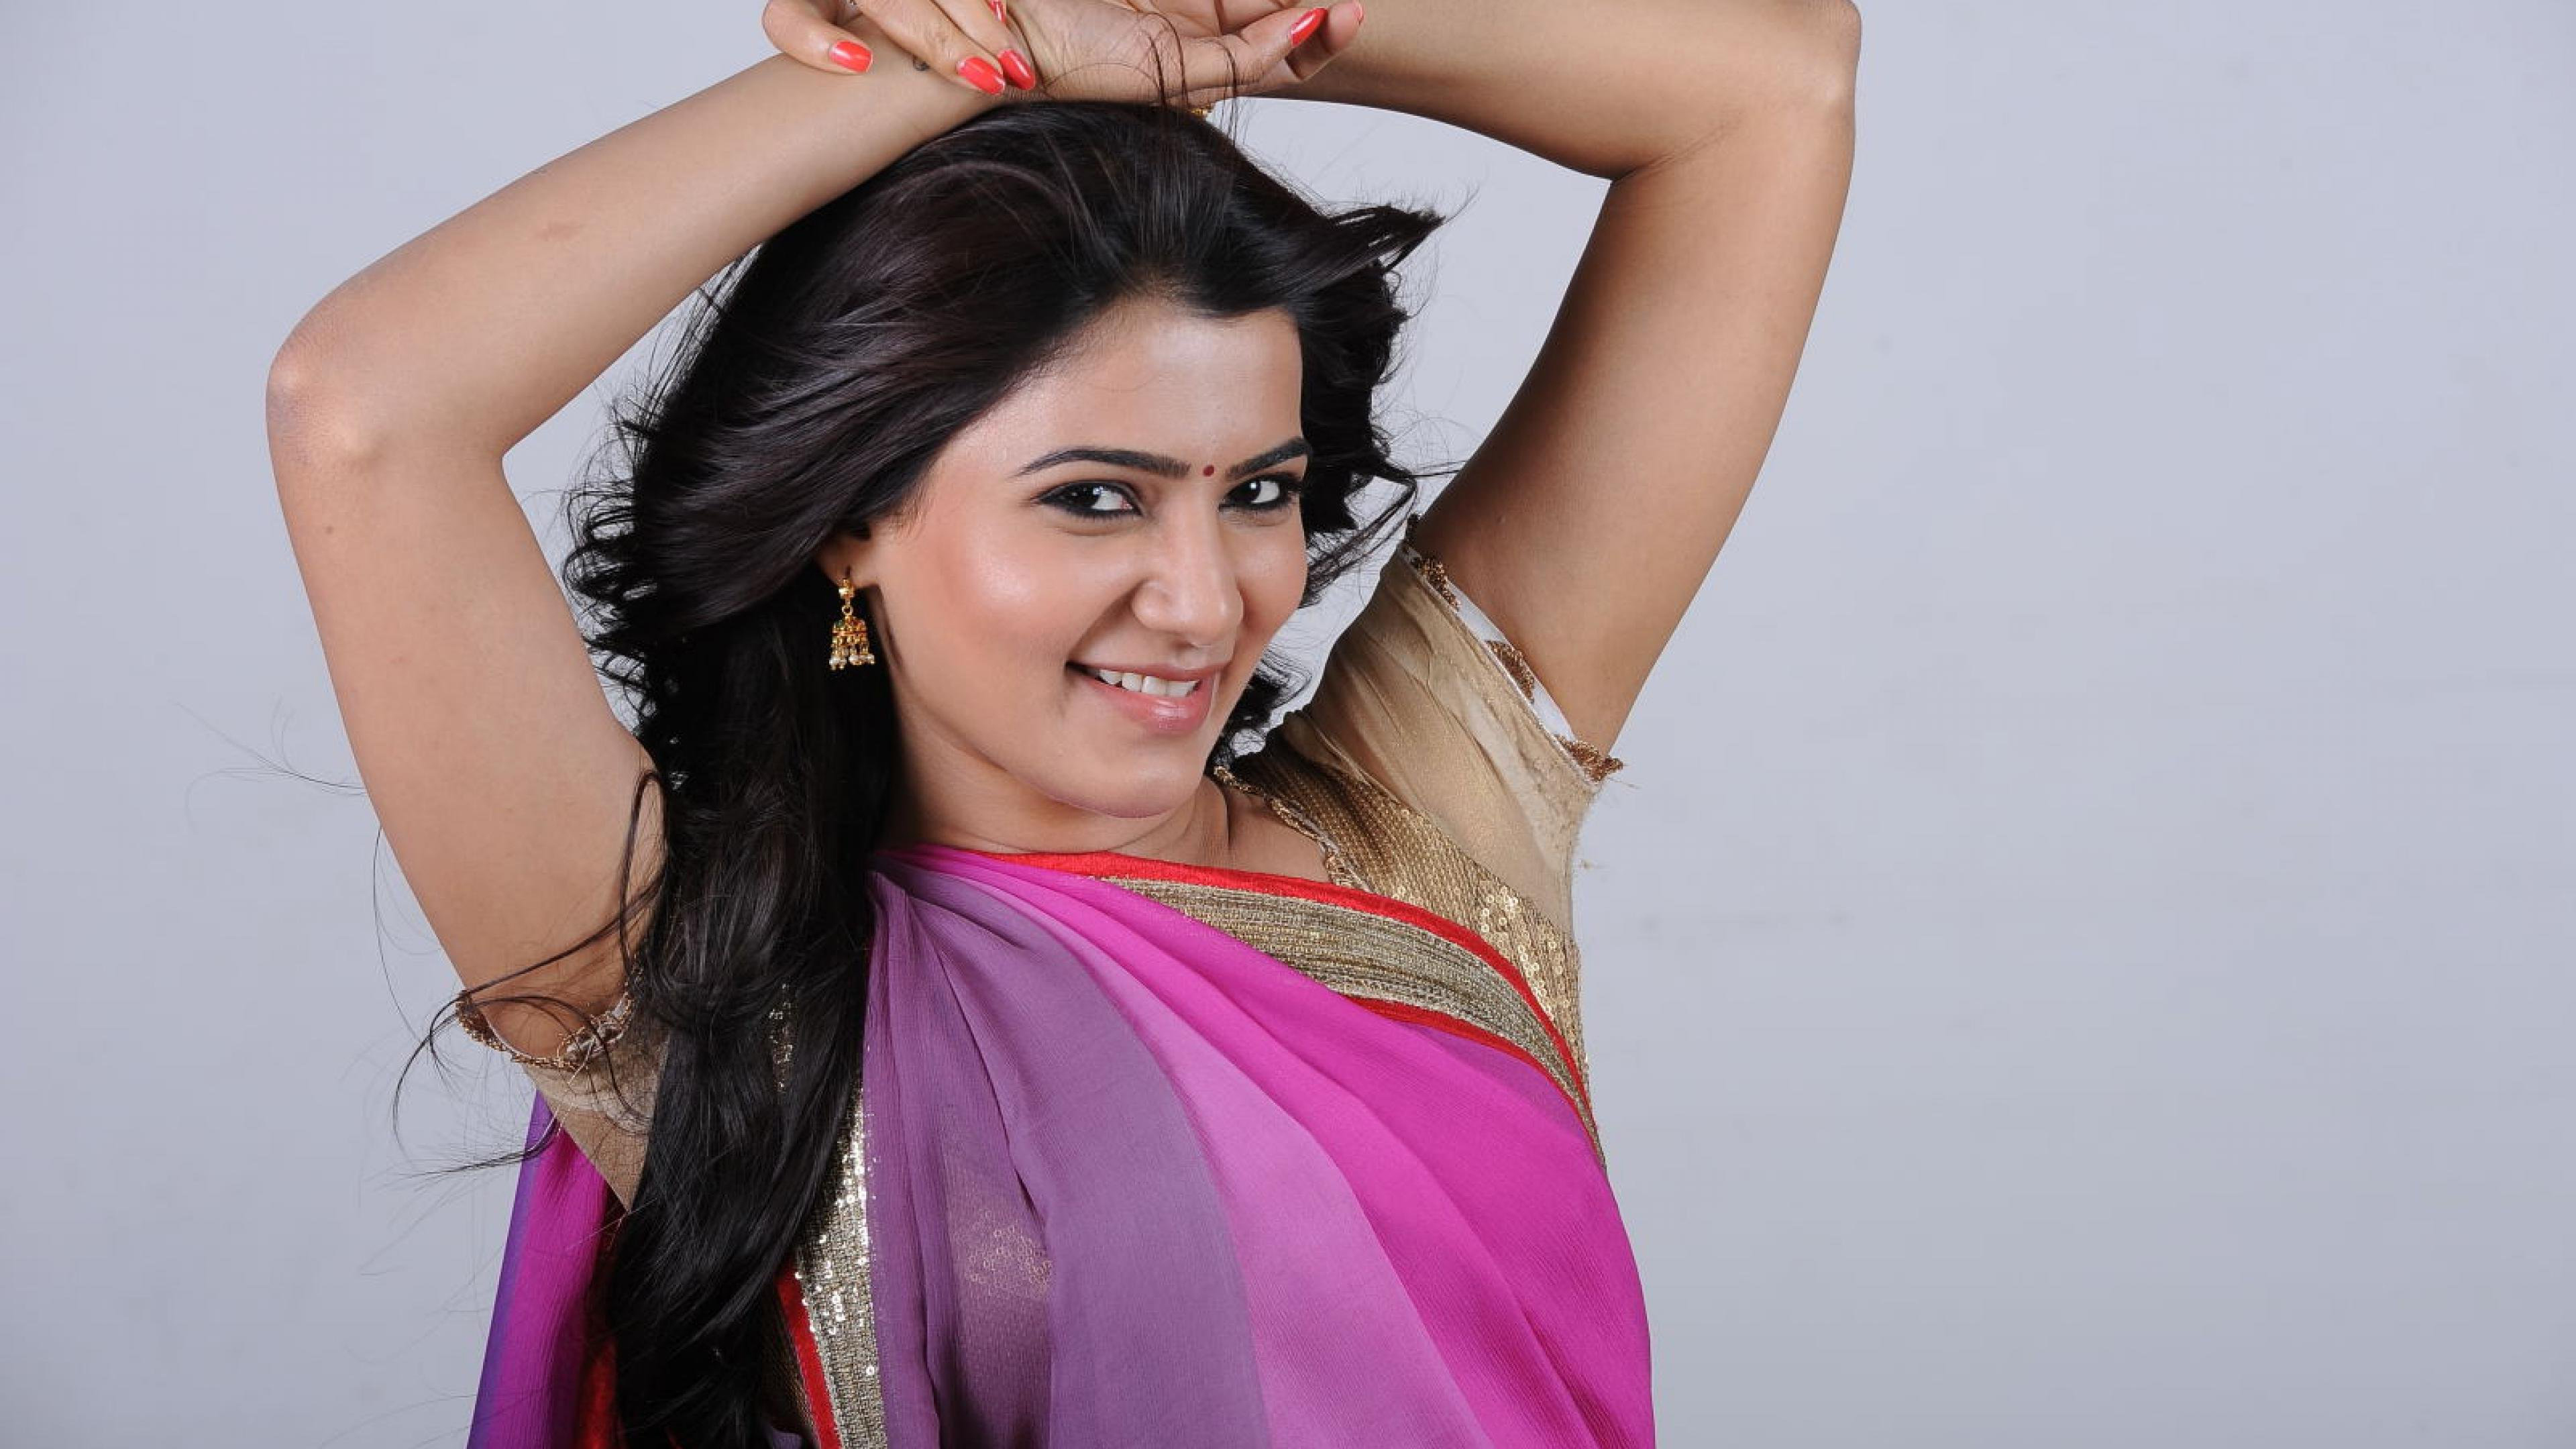 Samantha Hd Wallpapers Free Download New Wallpapers